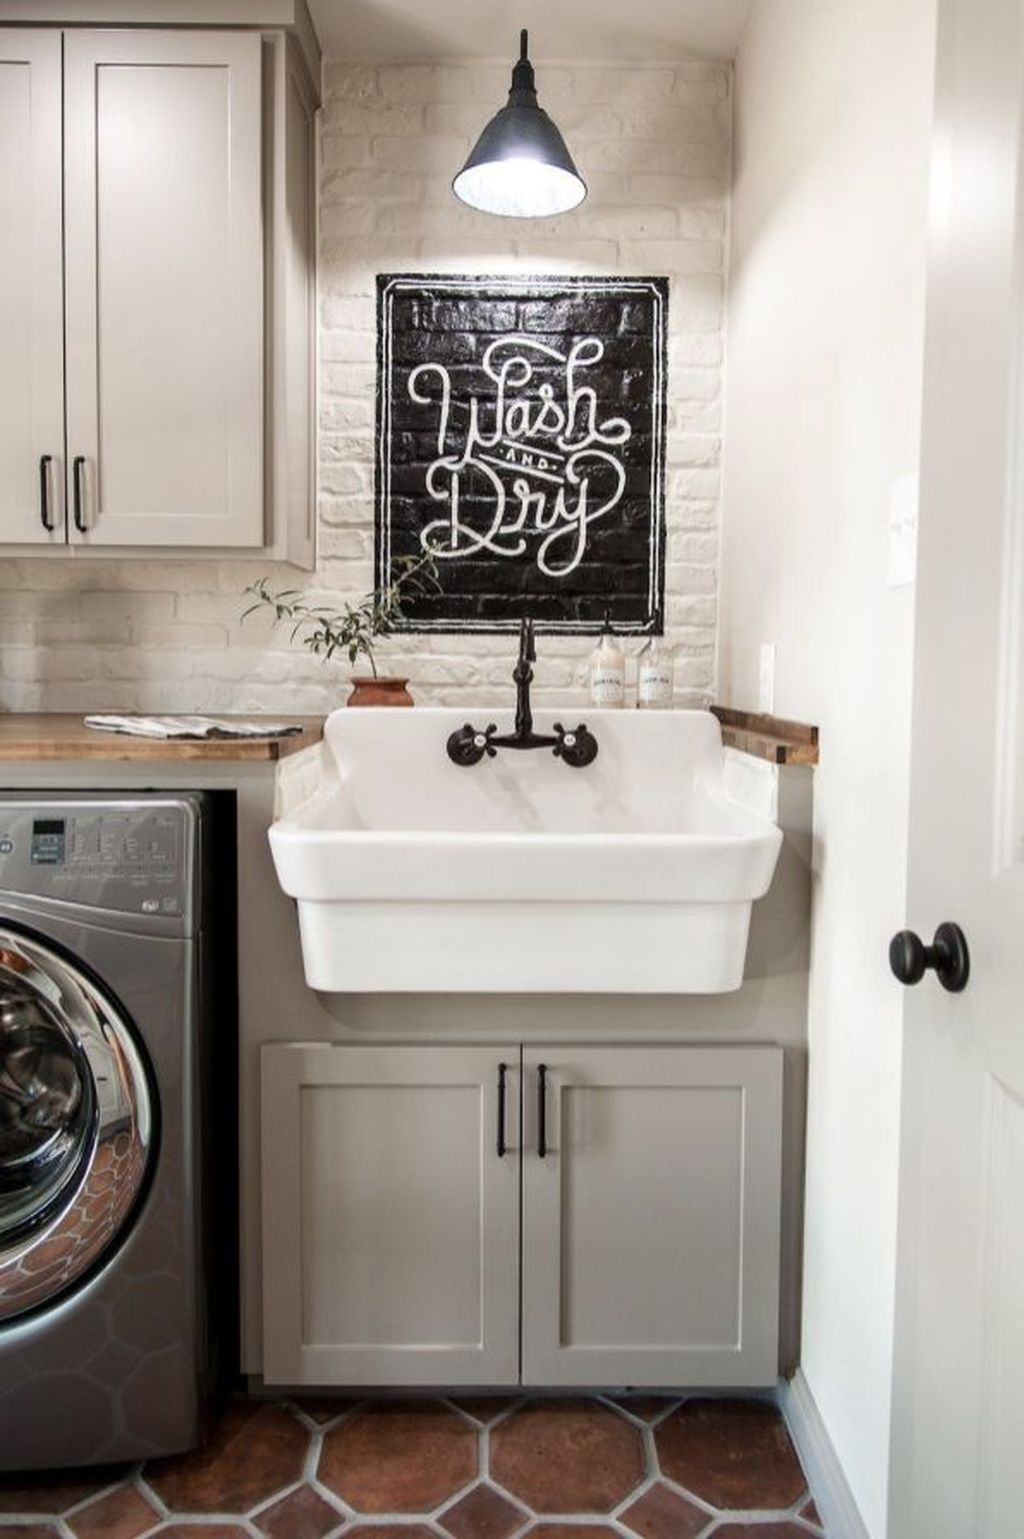 Enchanting Diy Easy Laundry Room Sign Ideas You Need To Try 12